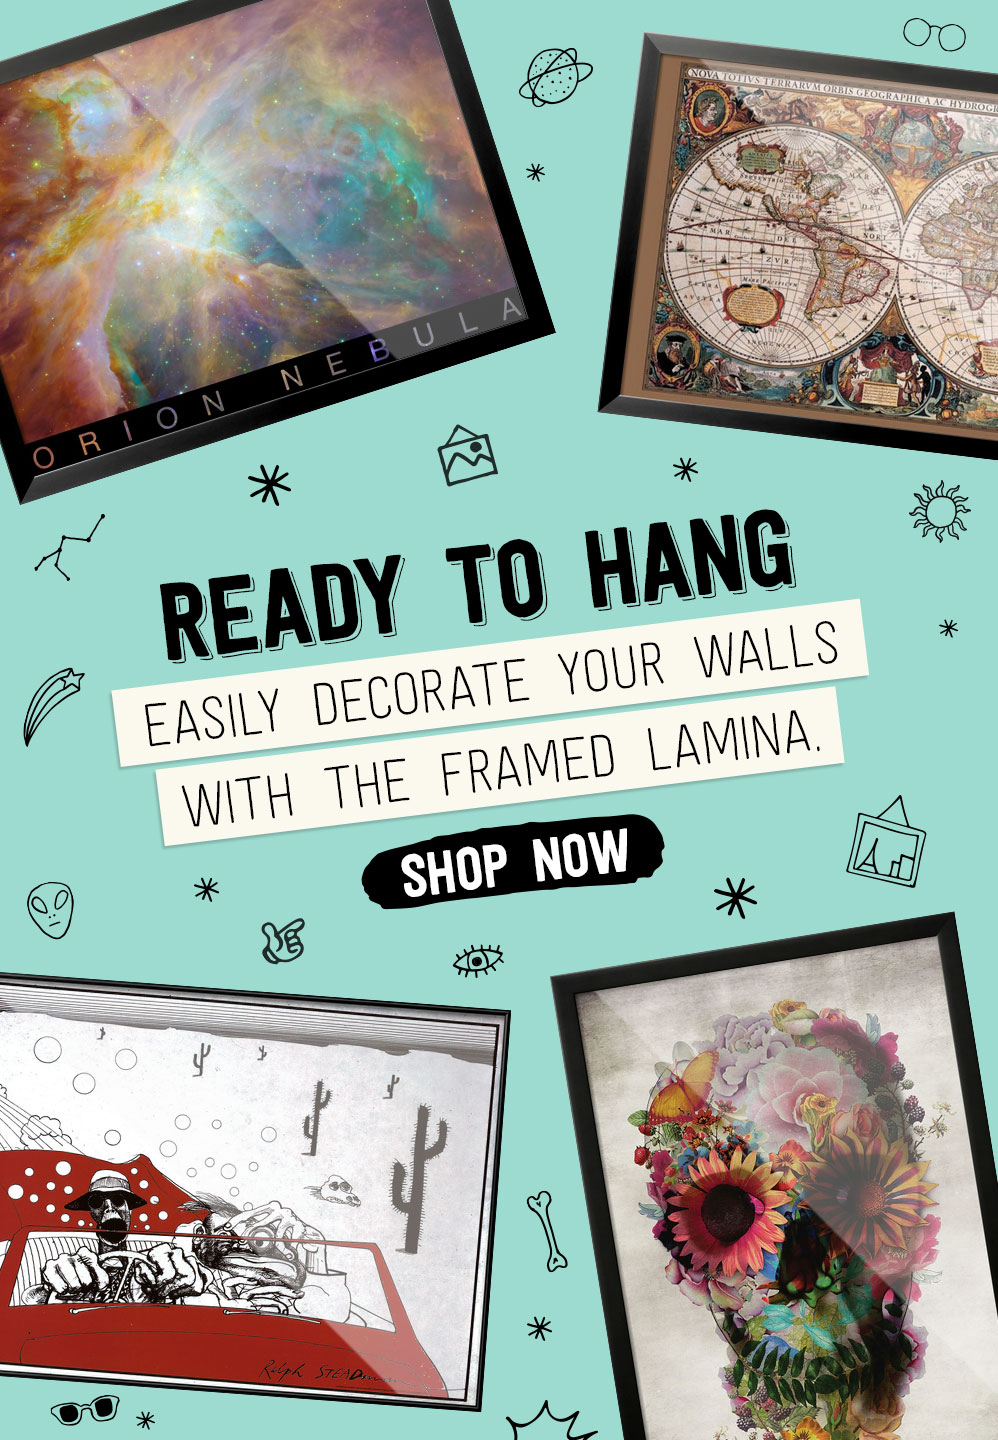 READY TO HANG. Easily decorate your walls with the framed lamina.